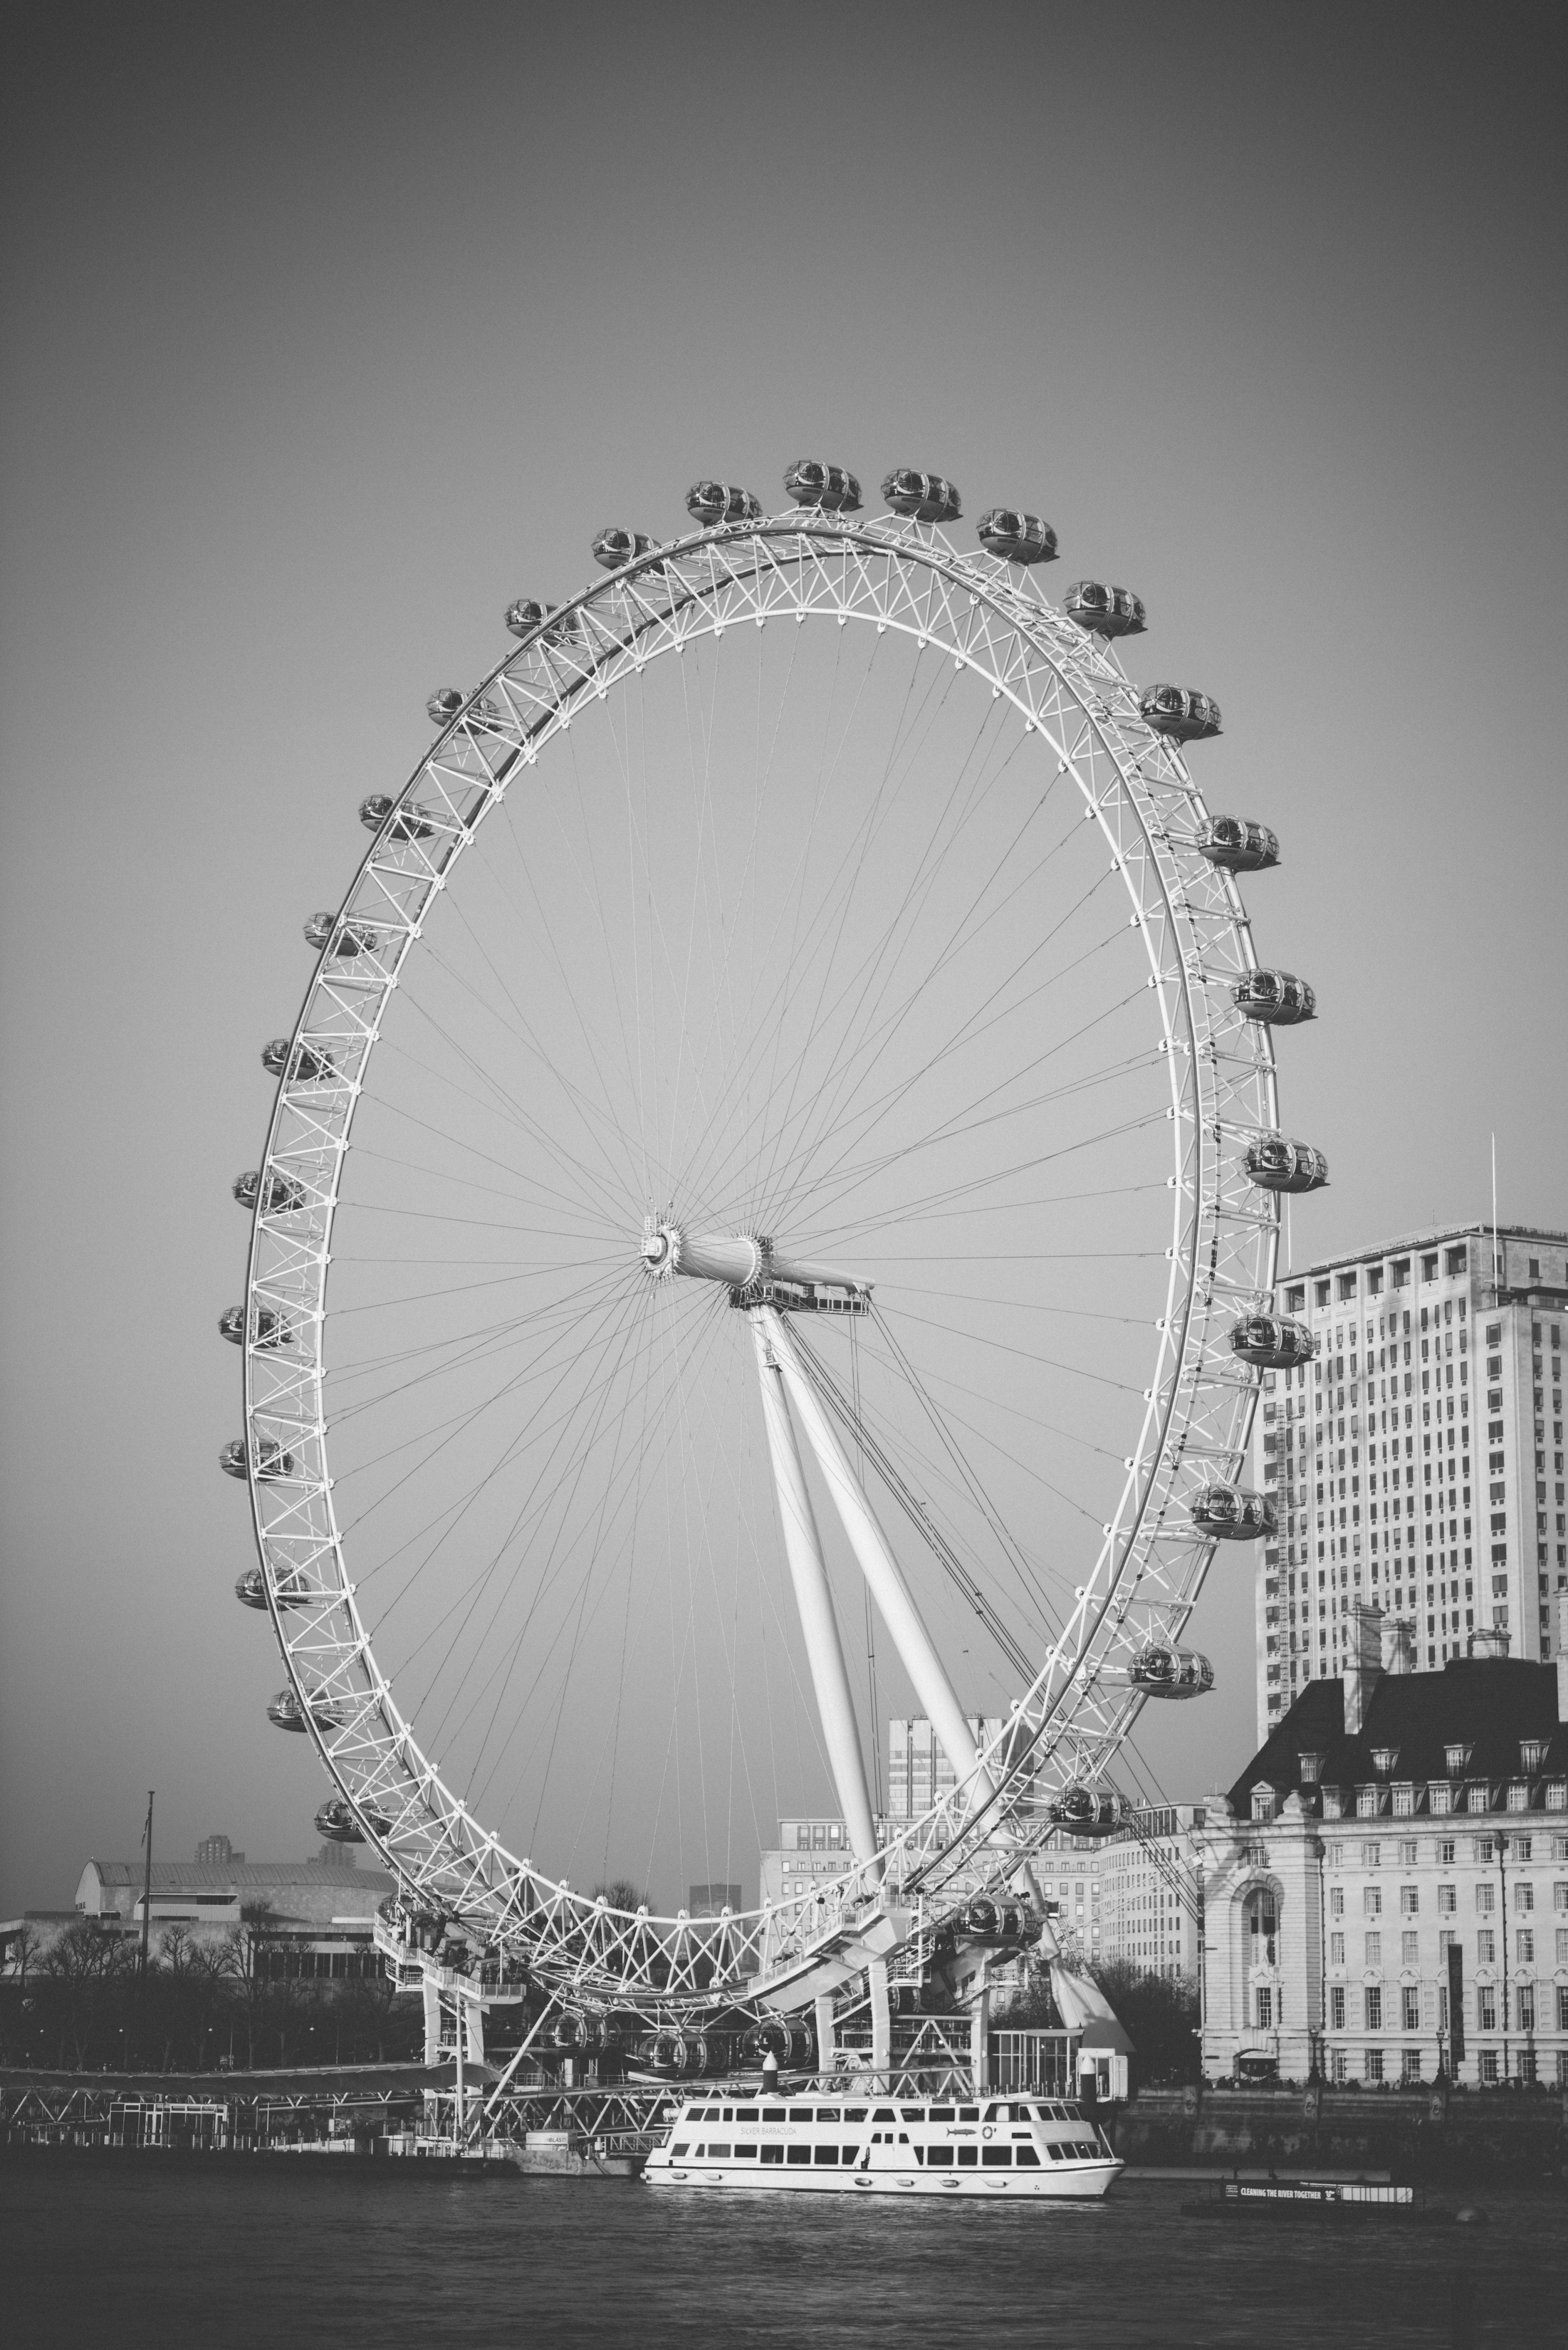 The London Eye, London